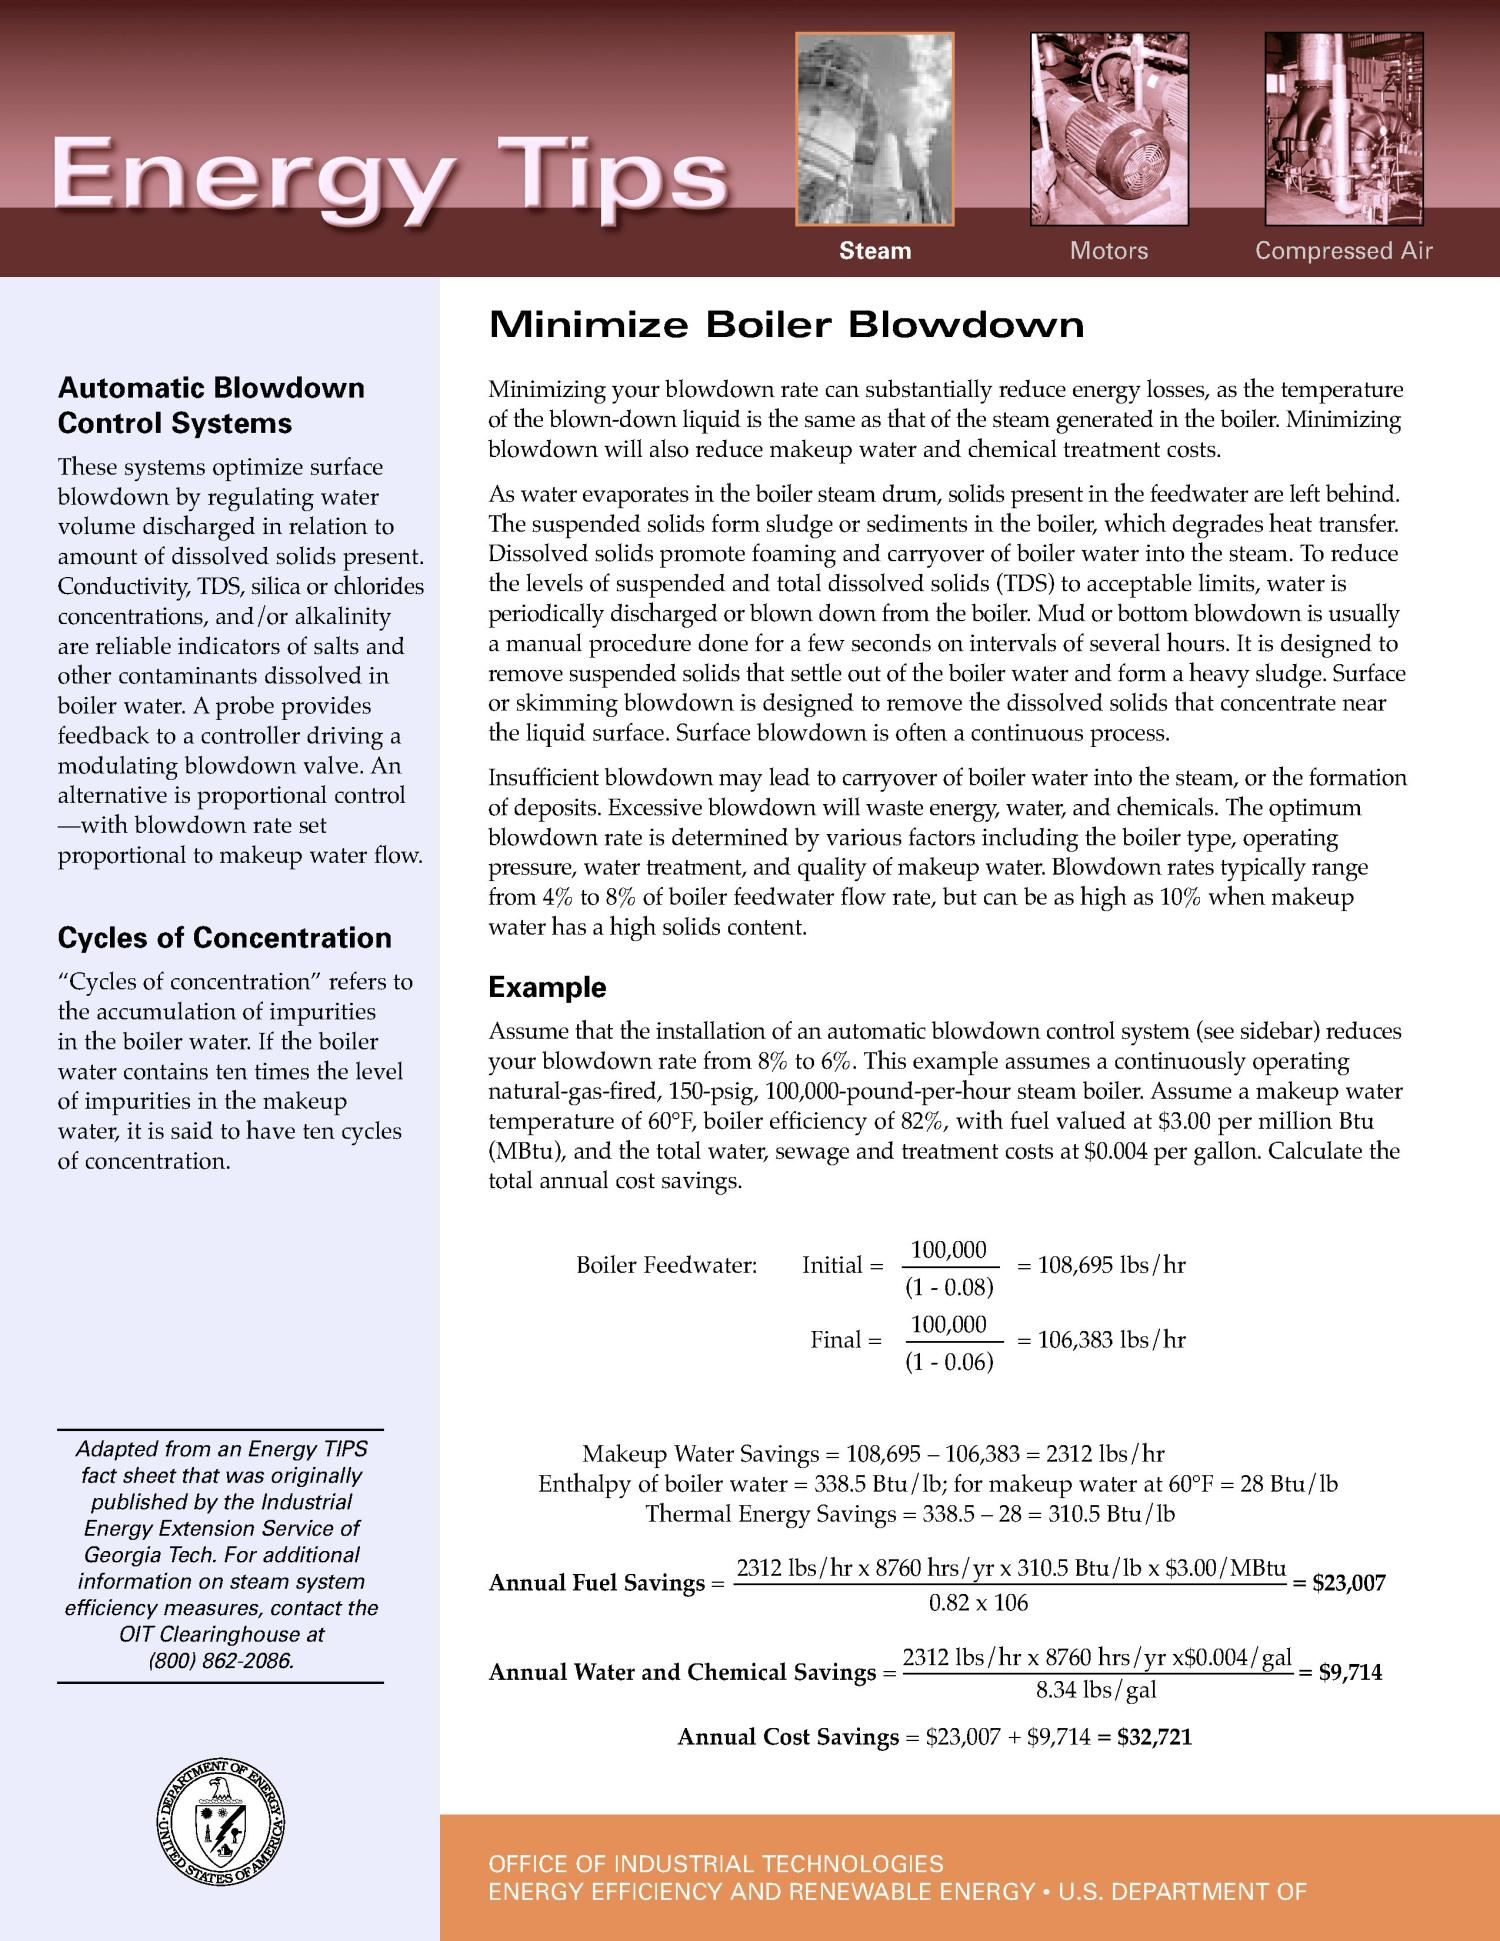 Minimize Boiler Blowdown: Office of Industrial Technologies (OIT) Steam Energy Tips Fact Sheet                                                                                                      [Sequence #]: 1 of 2